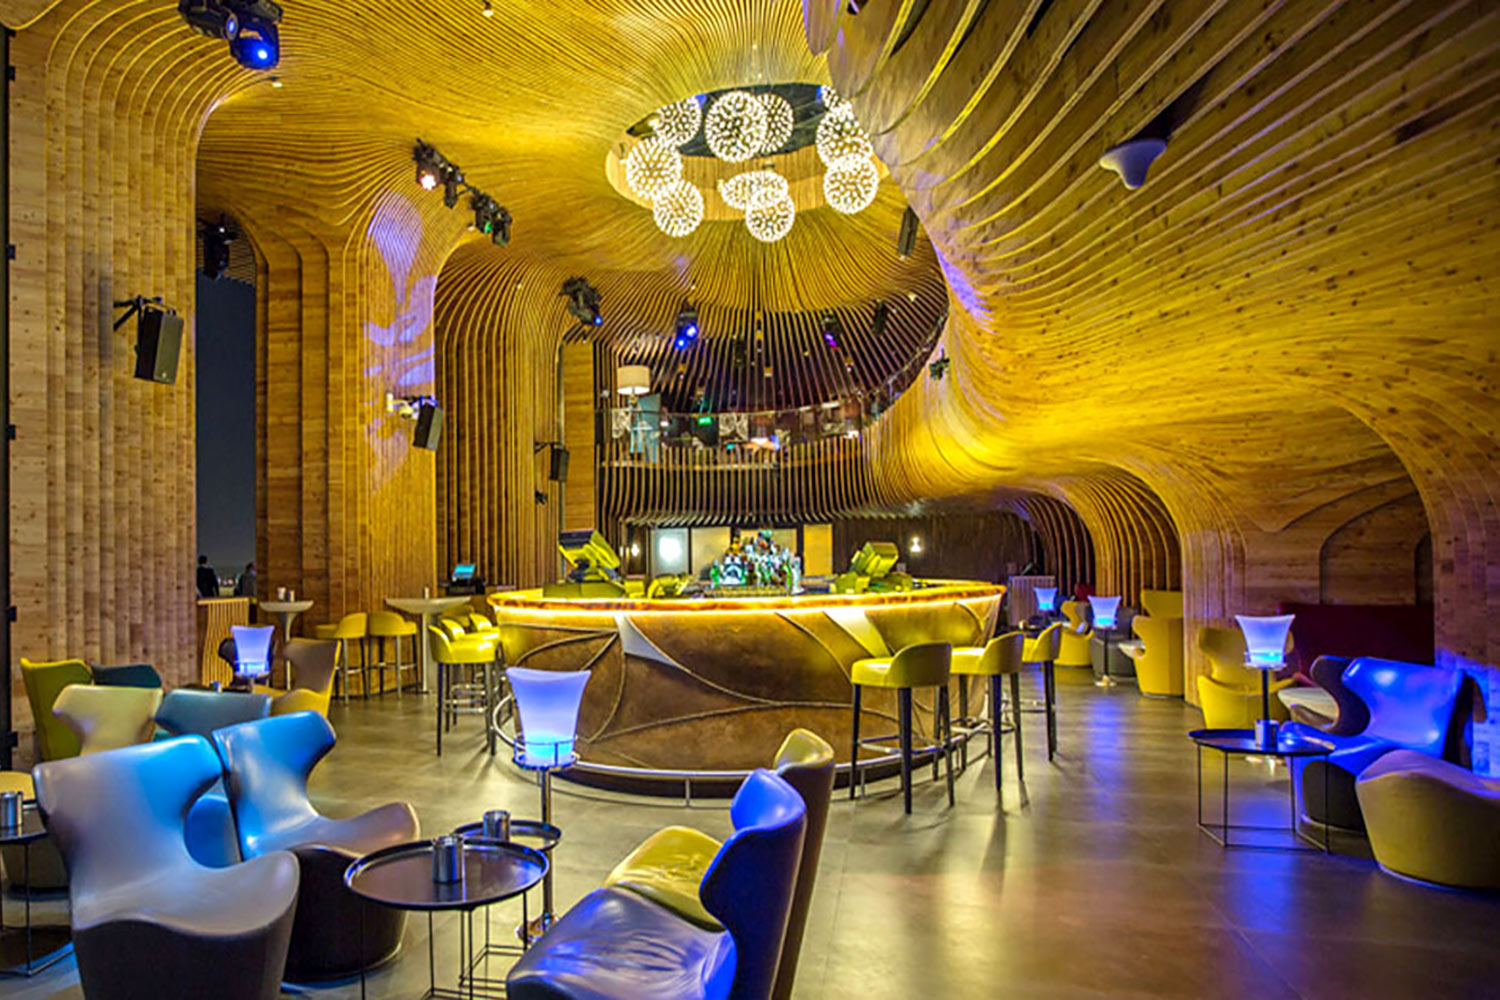 La Cigale, Doha's newest luxury hotel. WSDG (Walters-Storyk Design Group) performed a full acoustic makeover. Rooftop Bar 1